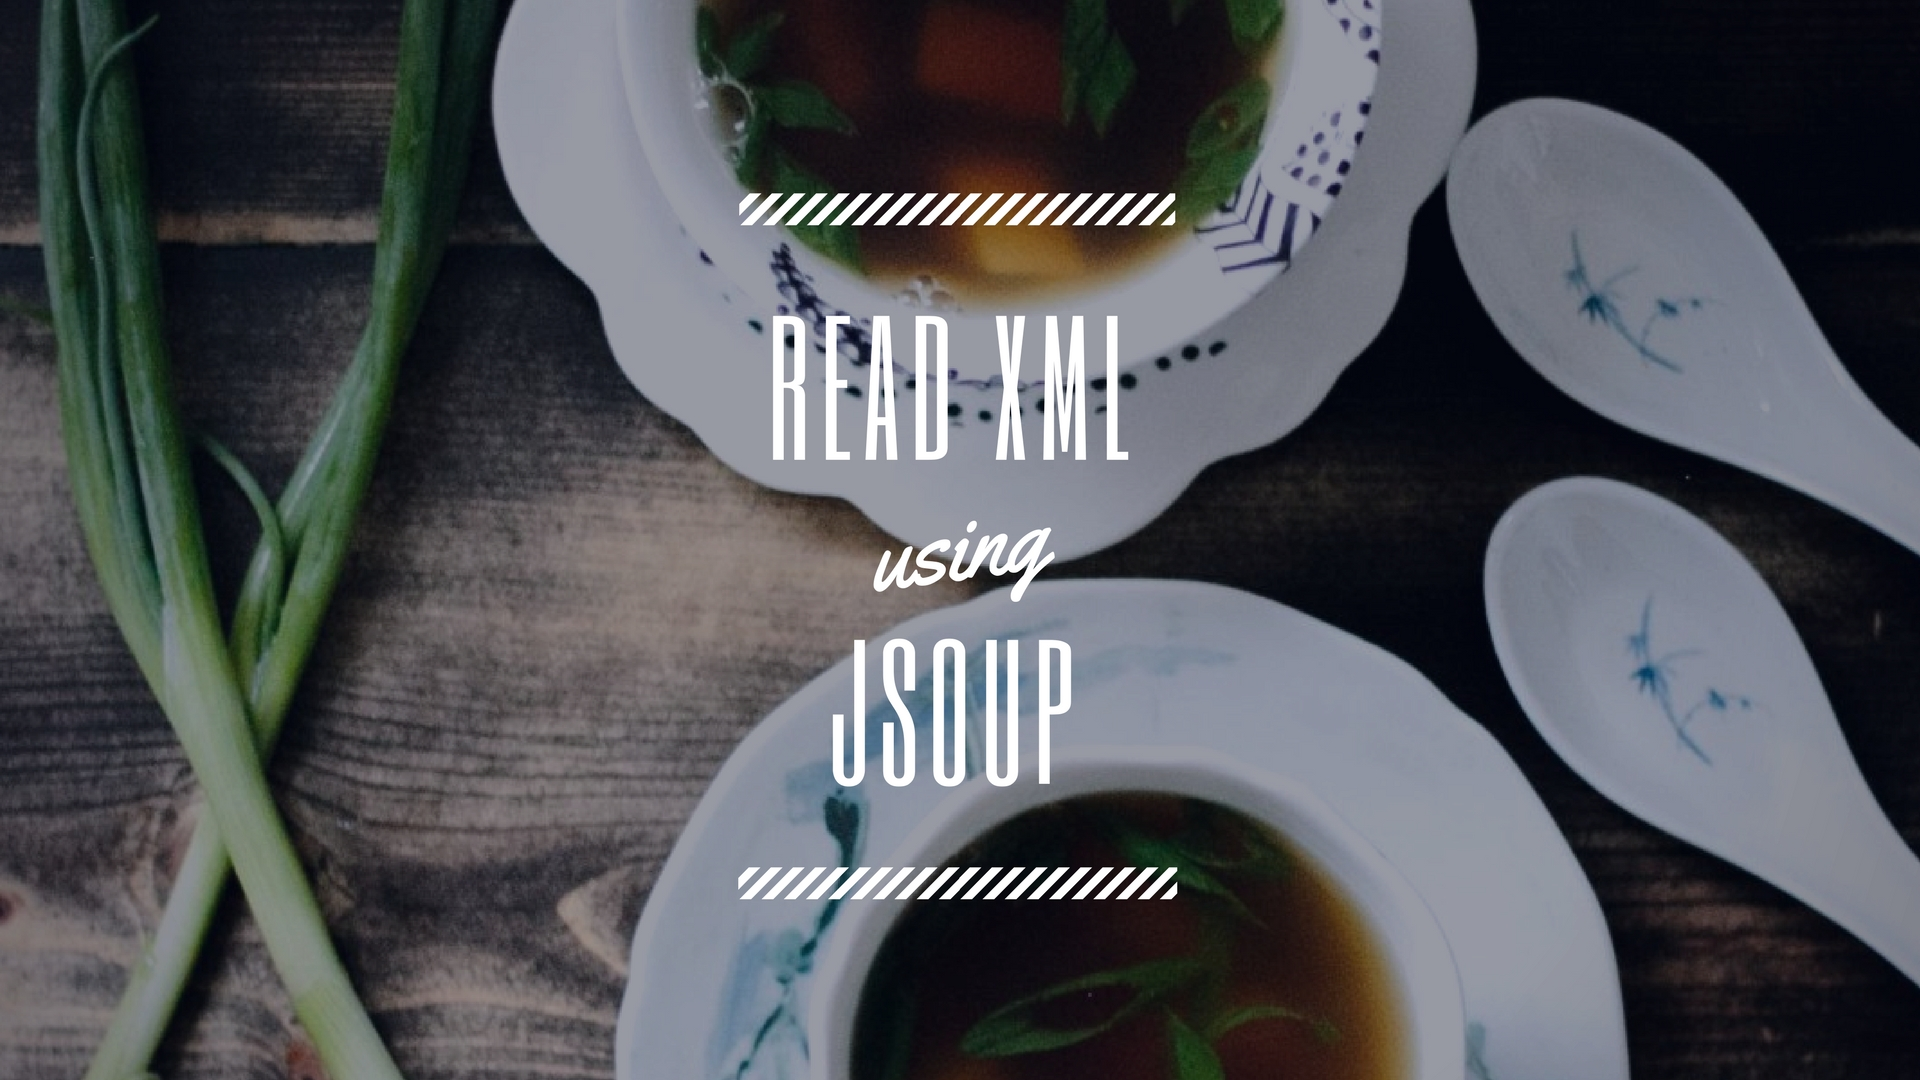 How to Read XML file in Java using Jsoup | Easiest Way to Parse